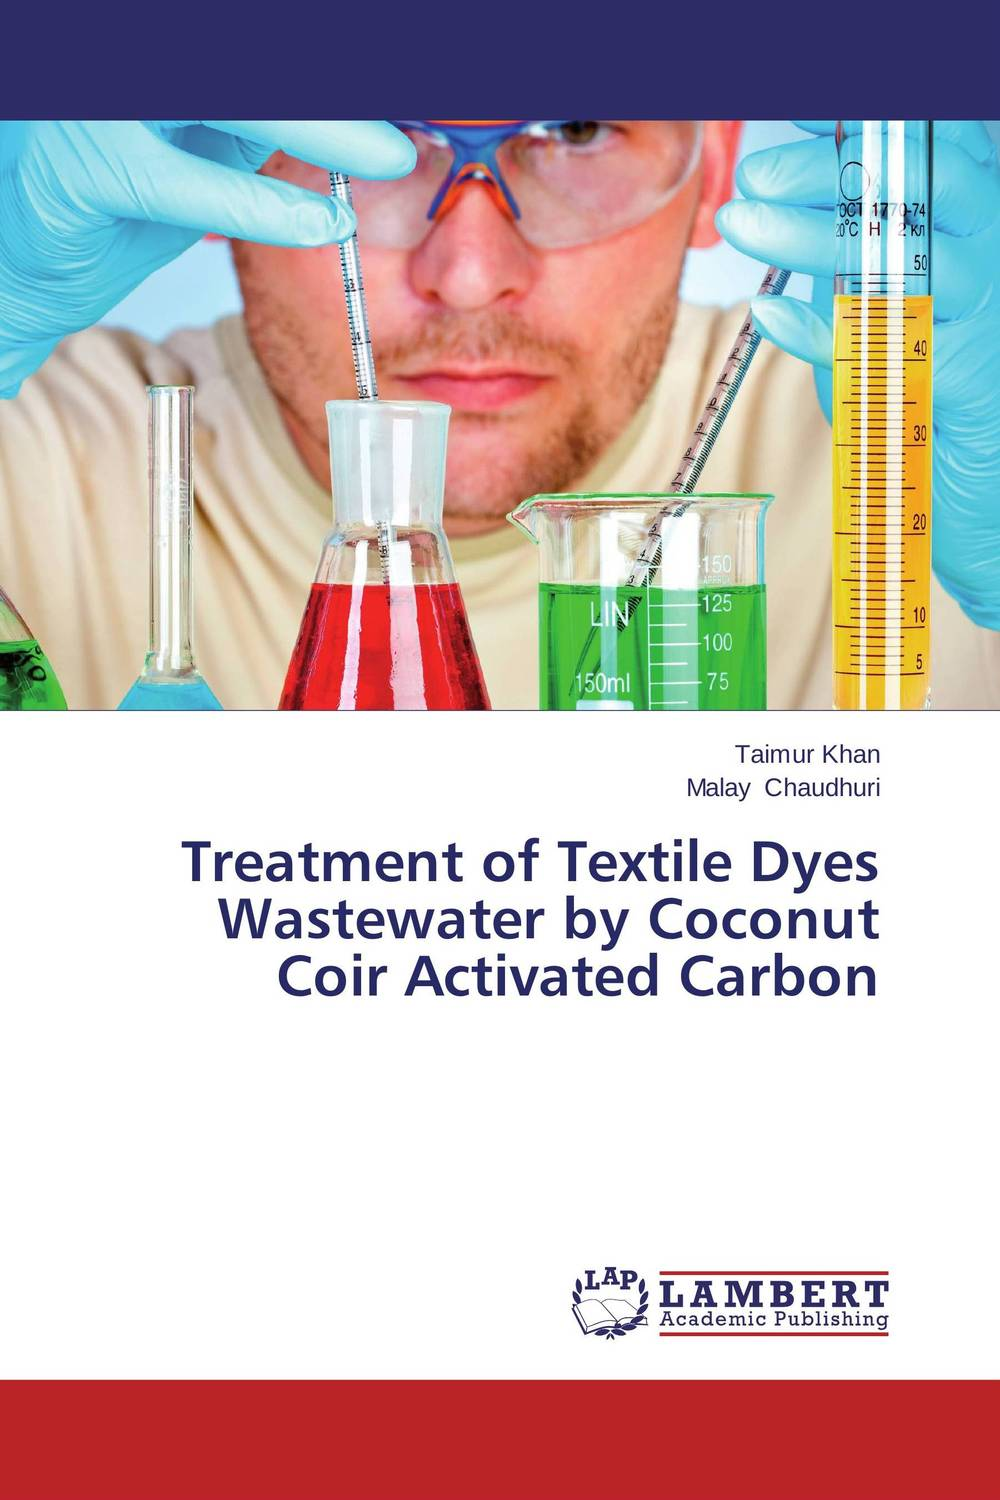 Treatment of Textile Dyes Wastewater by Coconut Coir Activated Carbon textile volume 1 issue 3 the journal of cloth and culture textile